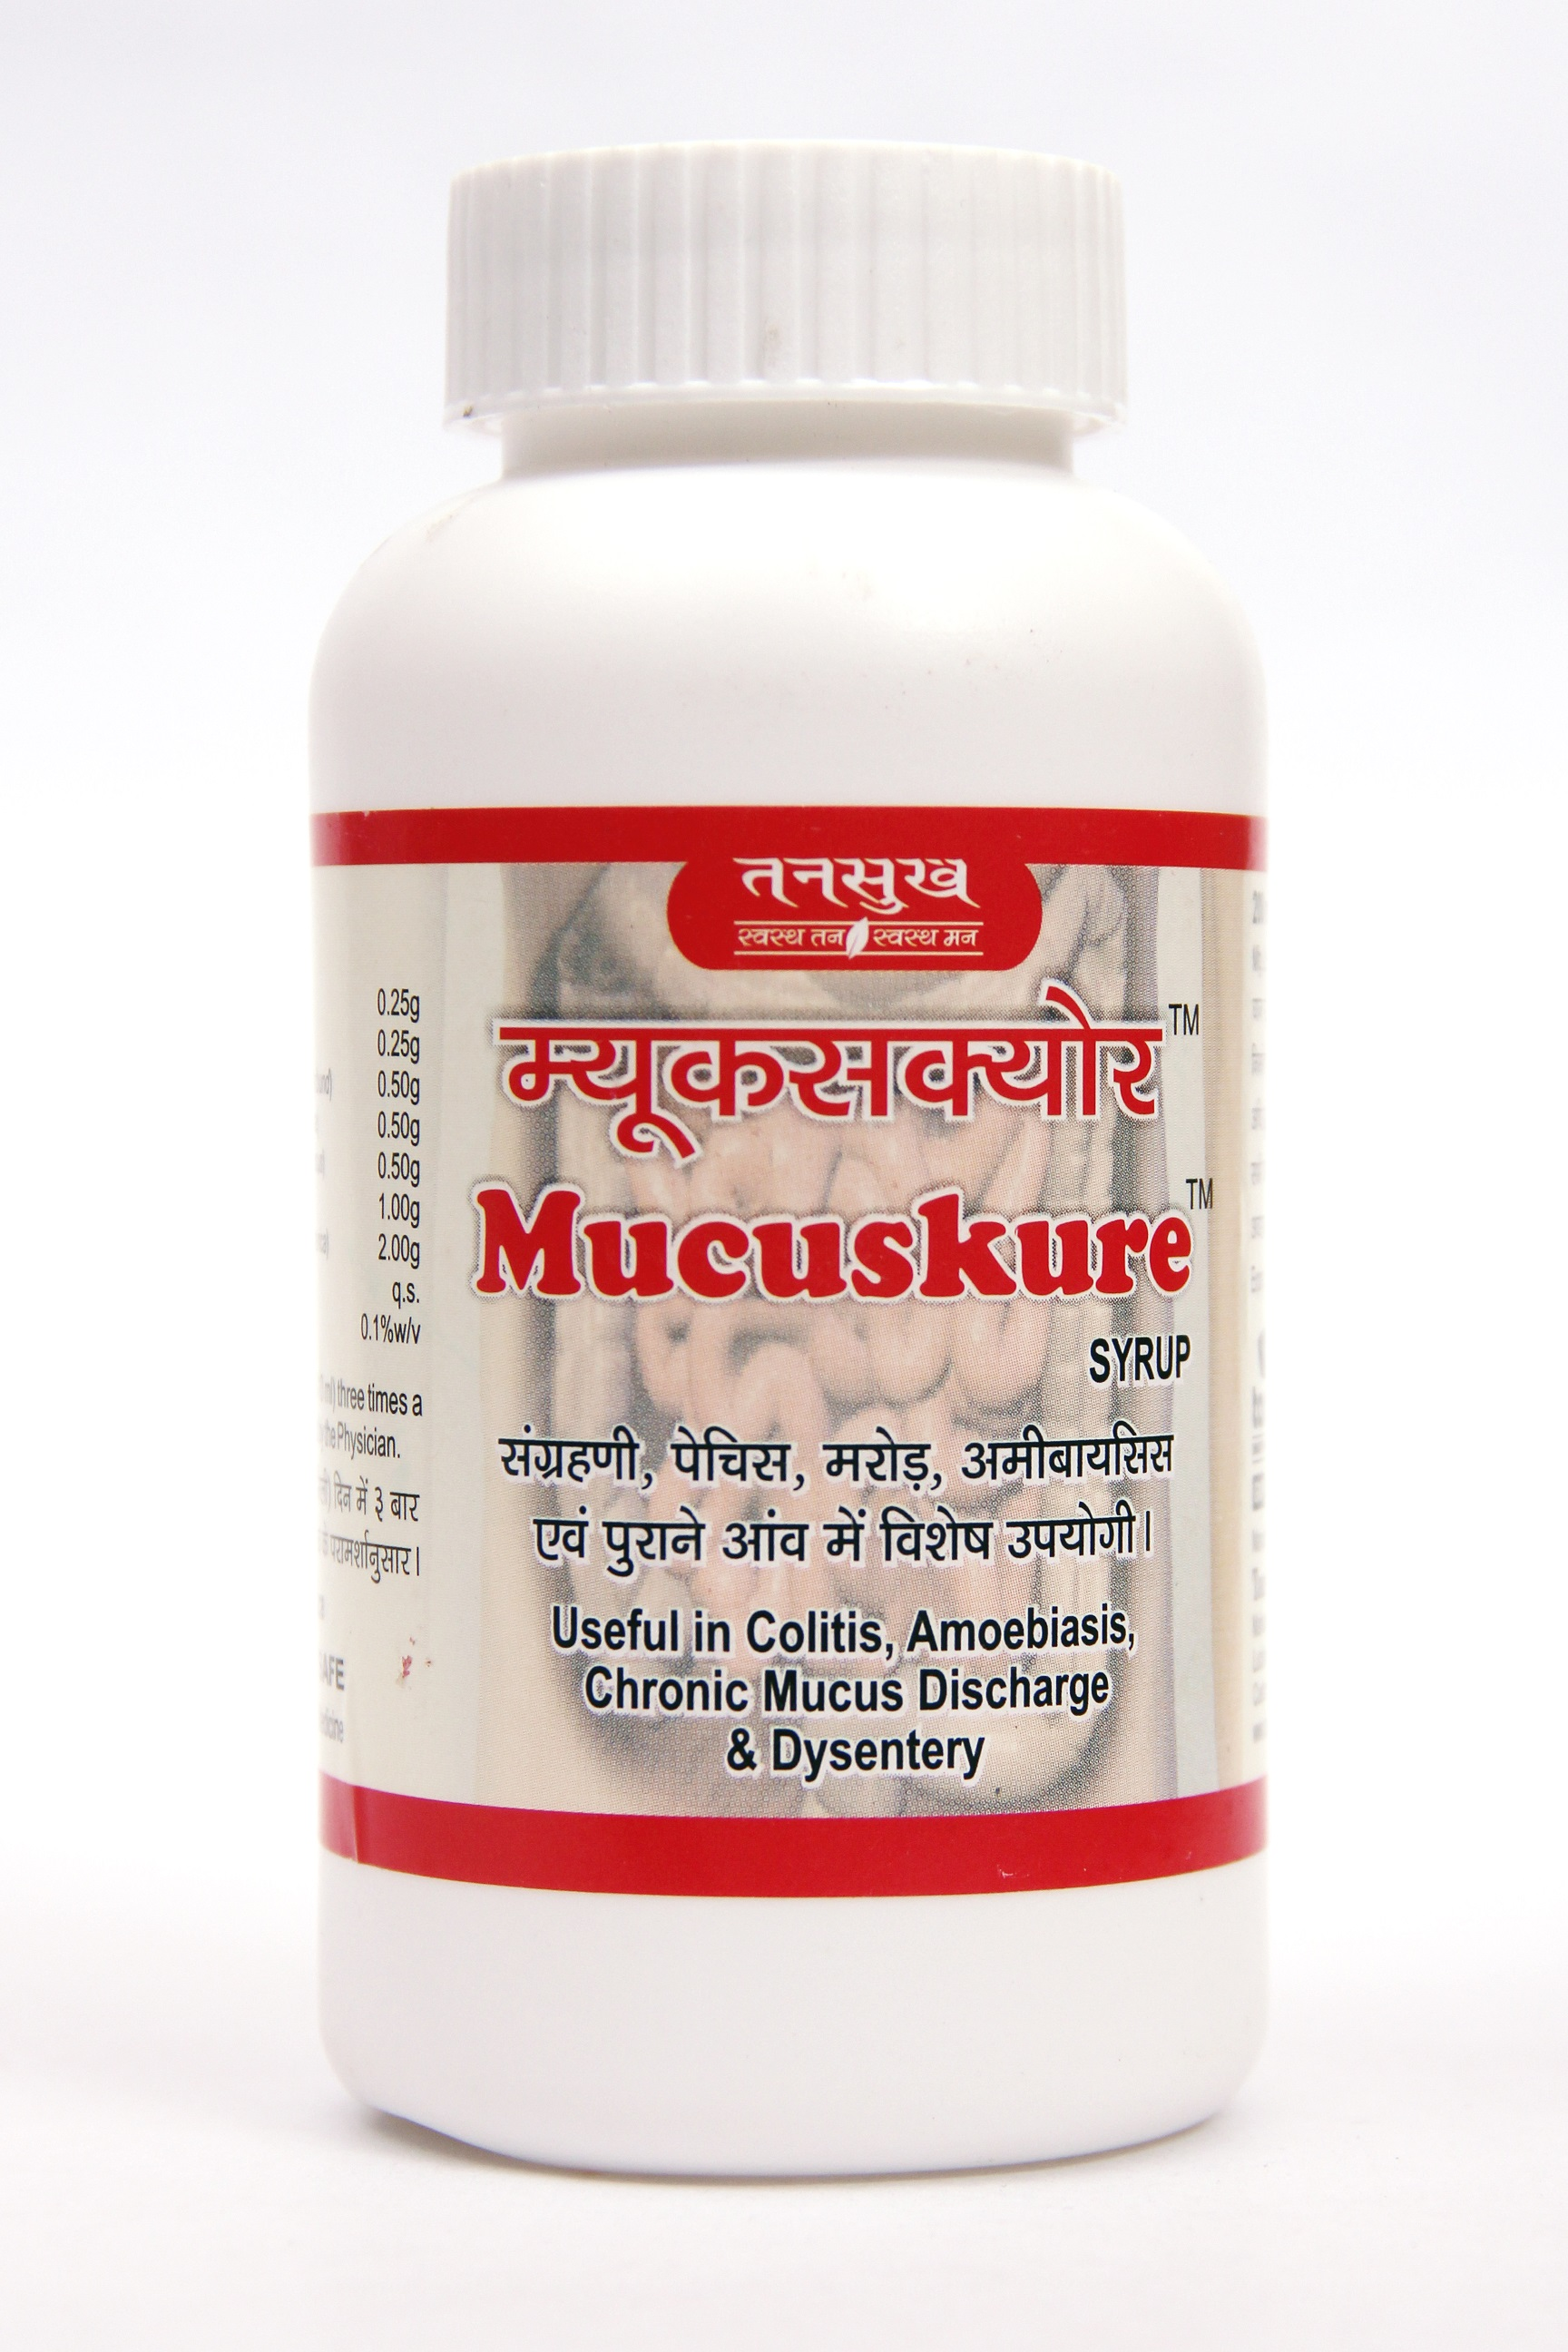 Mucuskure Compound